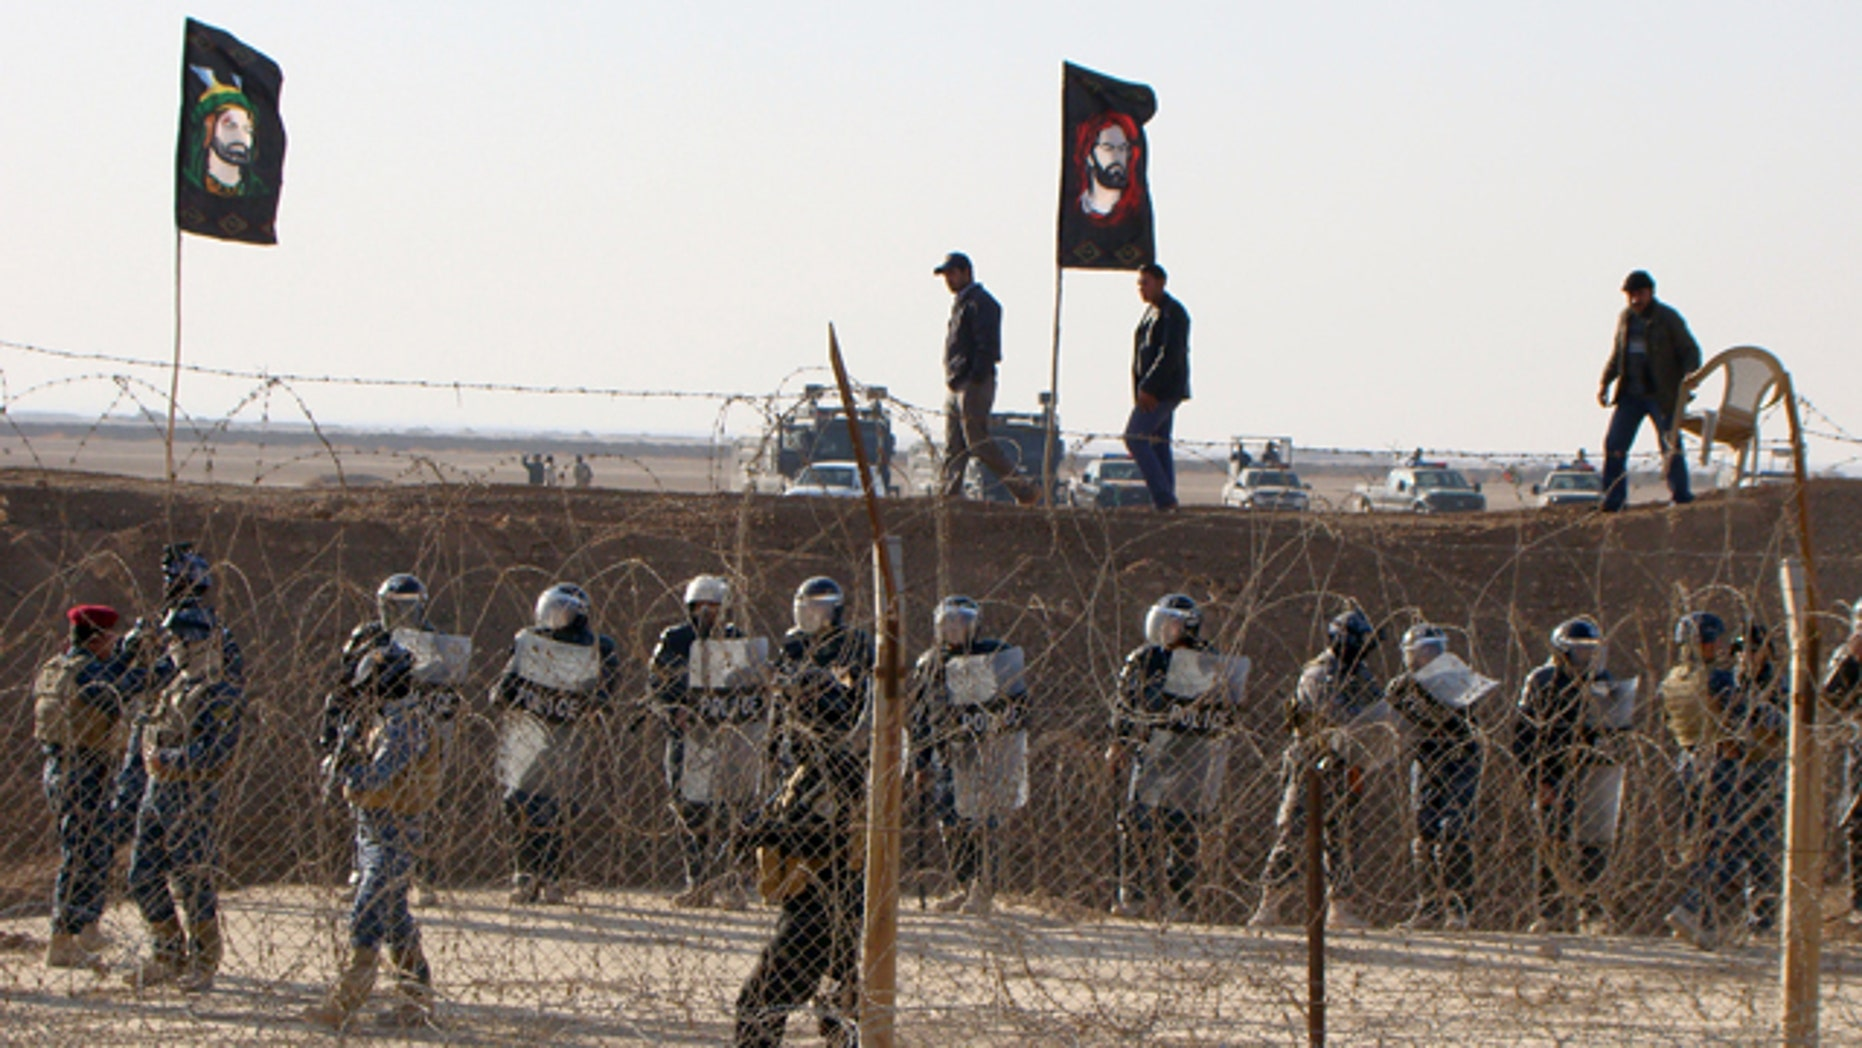 Dec. 9, 2011: In this photo provided by the People's Mujahedeen Organization of Iran, Iraqi police stand guard outside the opposition group's camp northeast of Baghdad, Iraq.